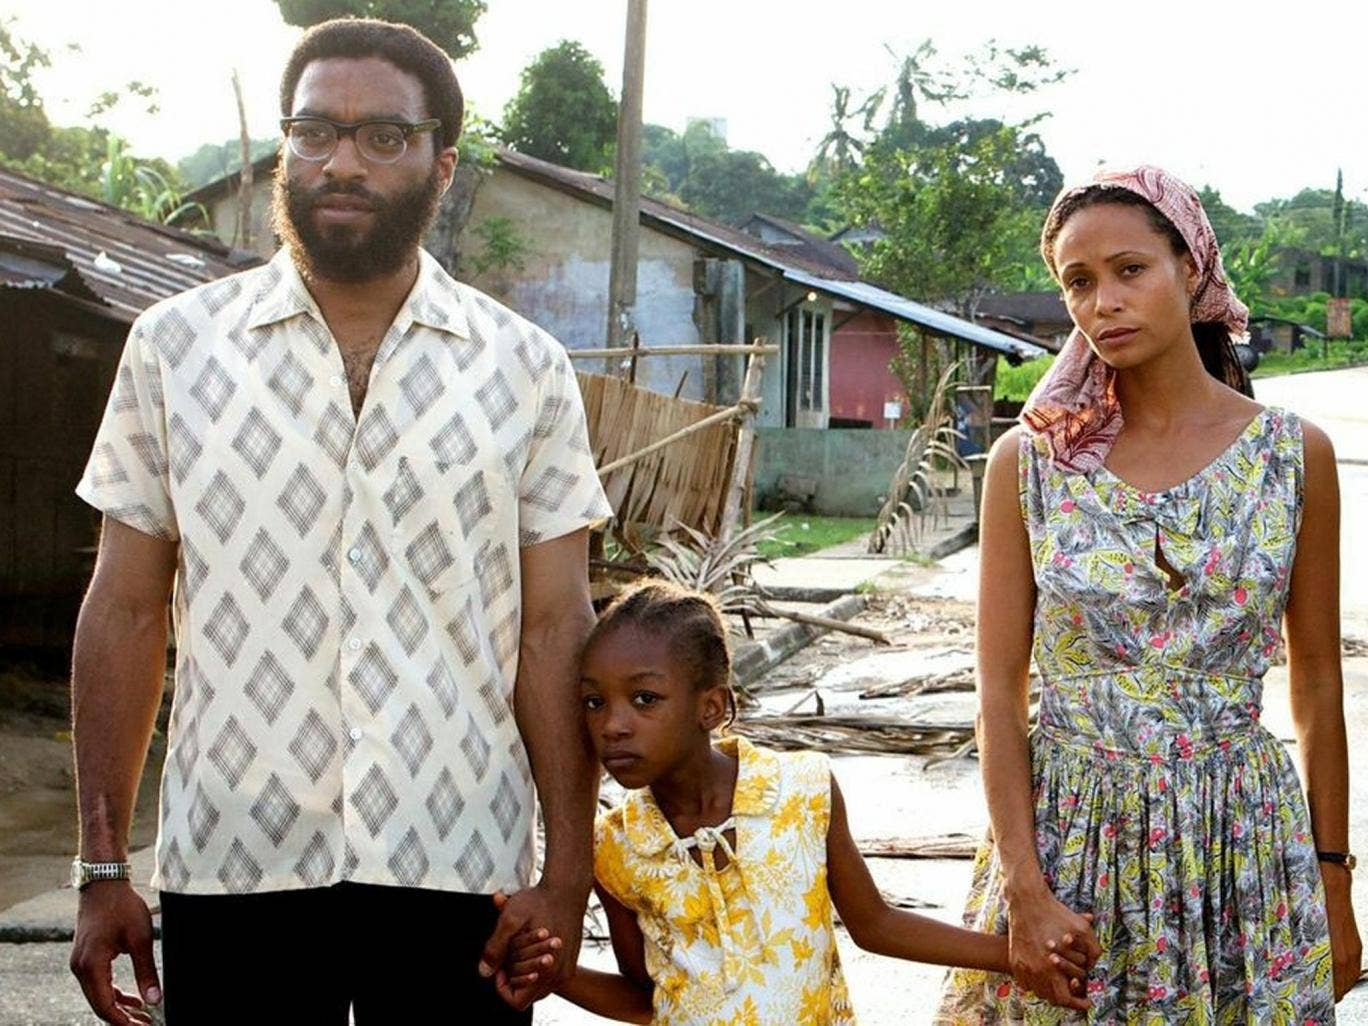 Chiwetel Ejiofor, Favour Asikpa and Thandie Newton in 'Half of a Yellow Sun'